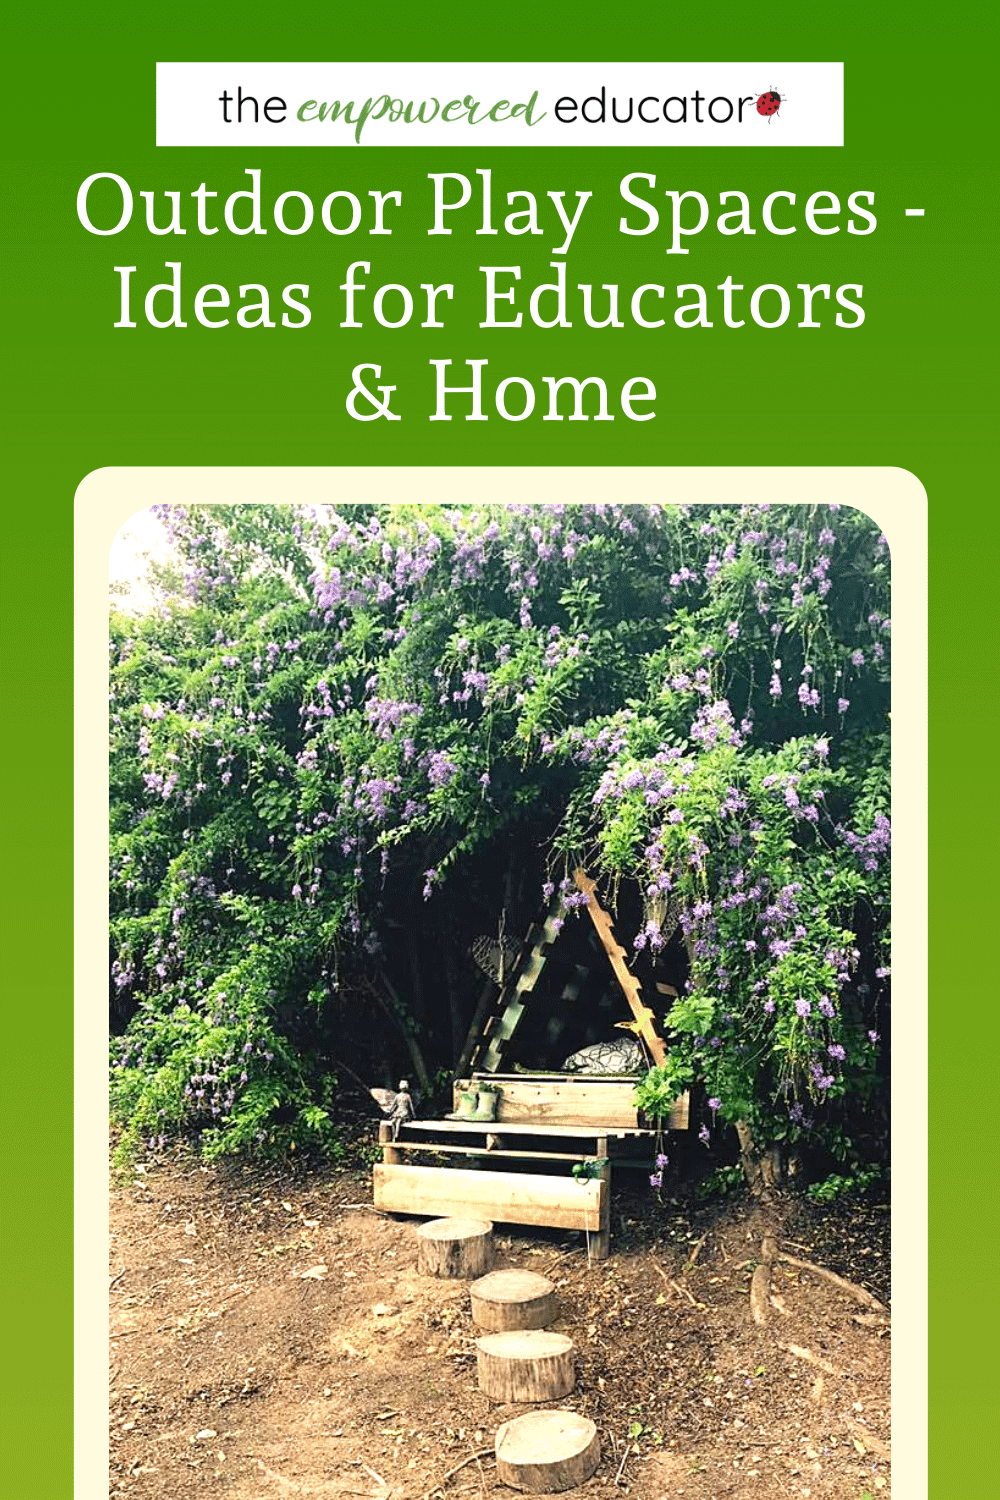 Outdoor Play Spaces - Ideas for Educators & Home